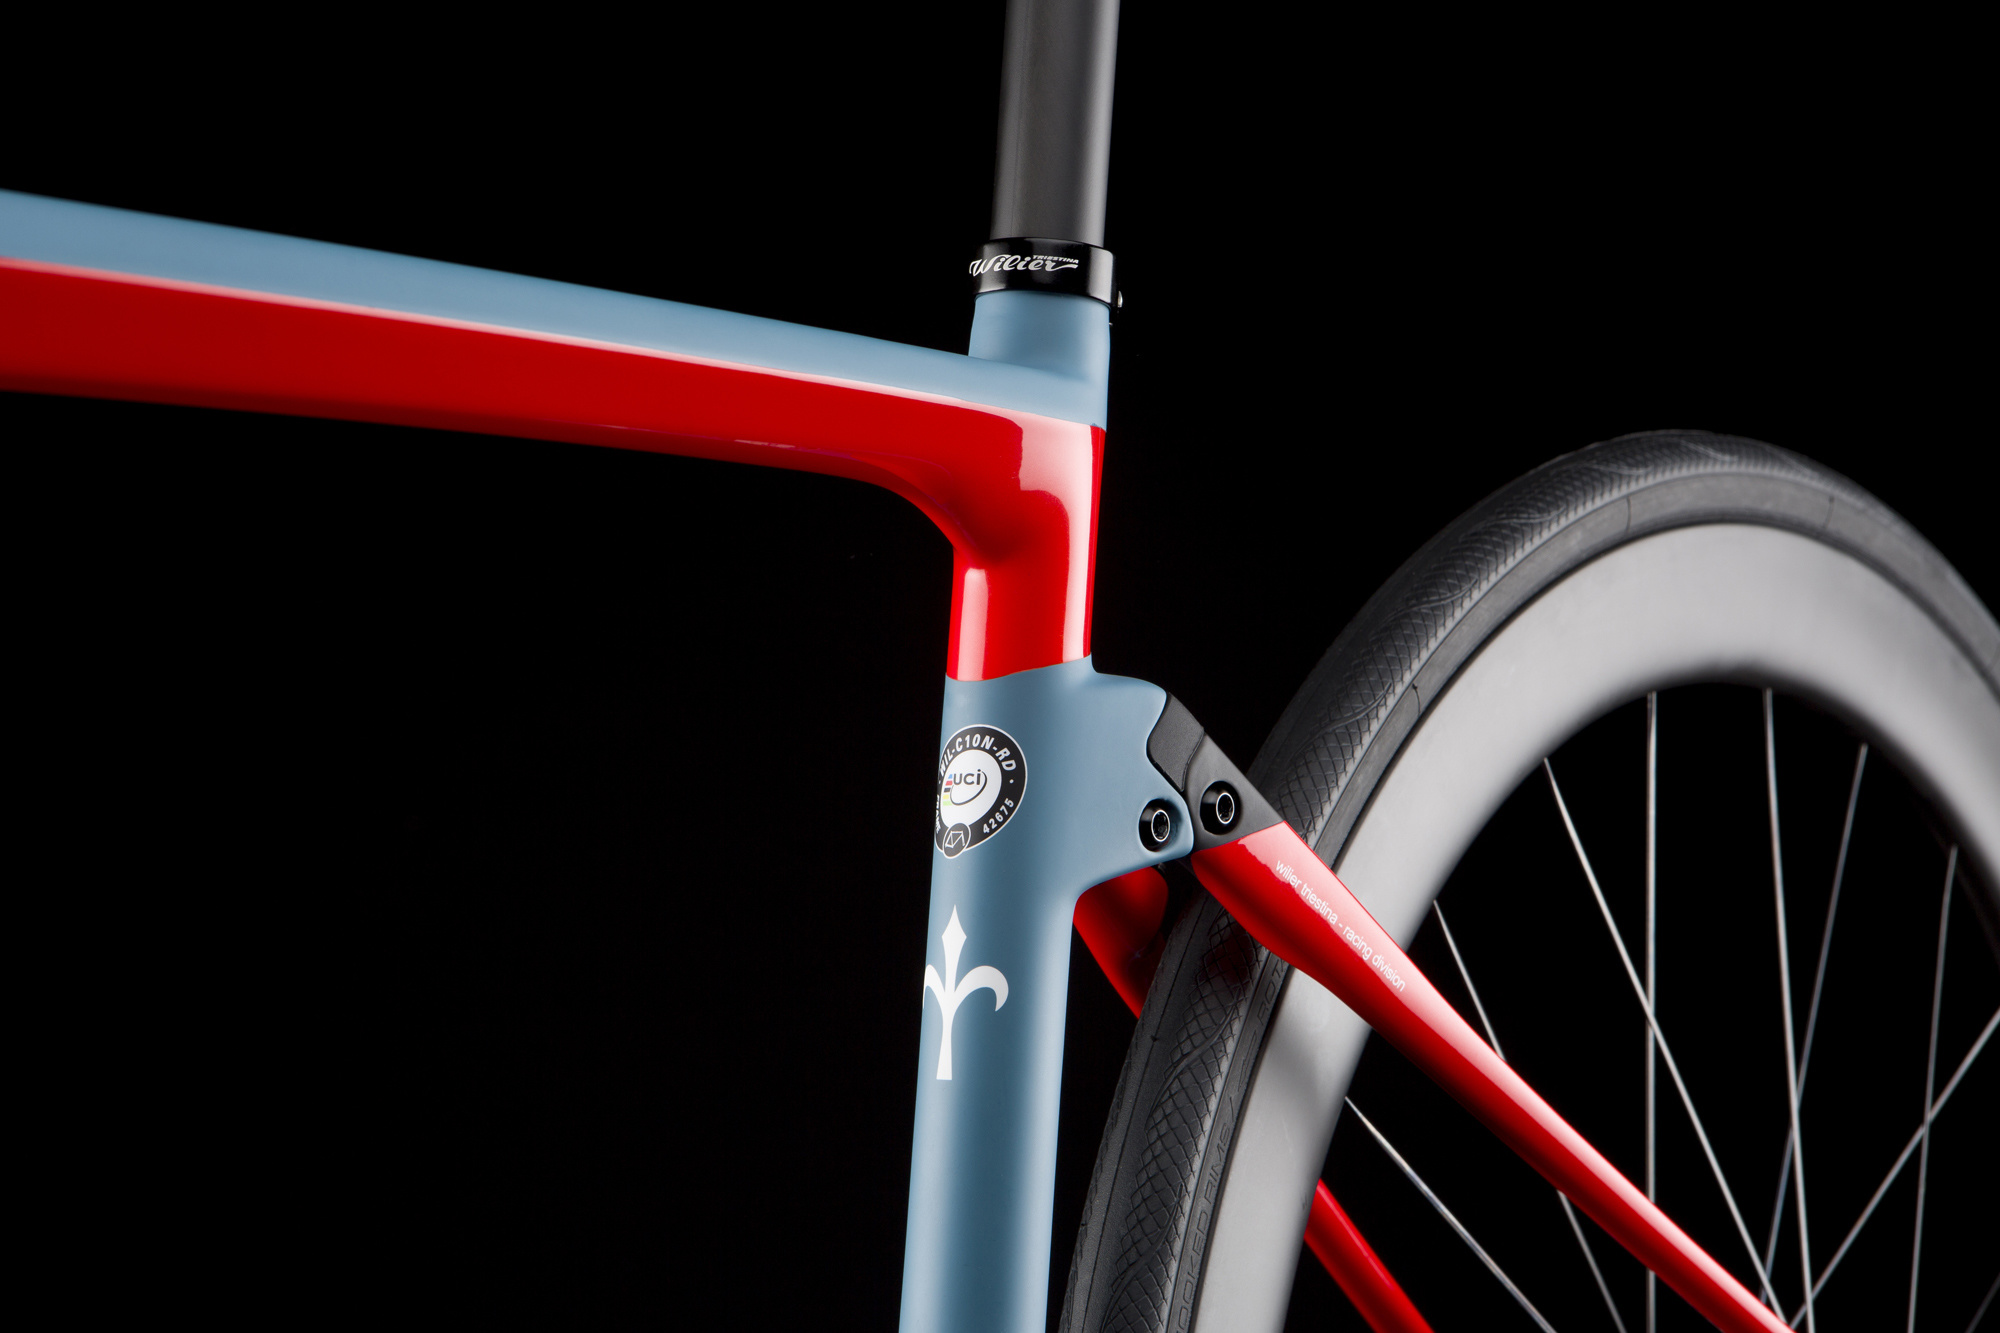 Cento10ndr Wilier Triestina Spa Of A Bike Shock Absorbers 101 Tire Types Bicycle Geometry Fitting For Spend Long Hours In The Saddle Thanks To Its Specially Designed Endurance And Actiflex System Wiliers New Approach Absorbing Rear